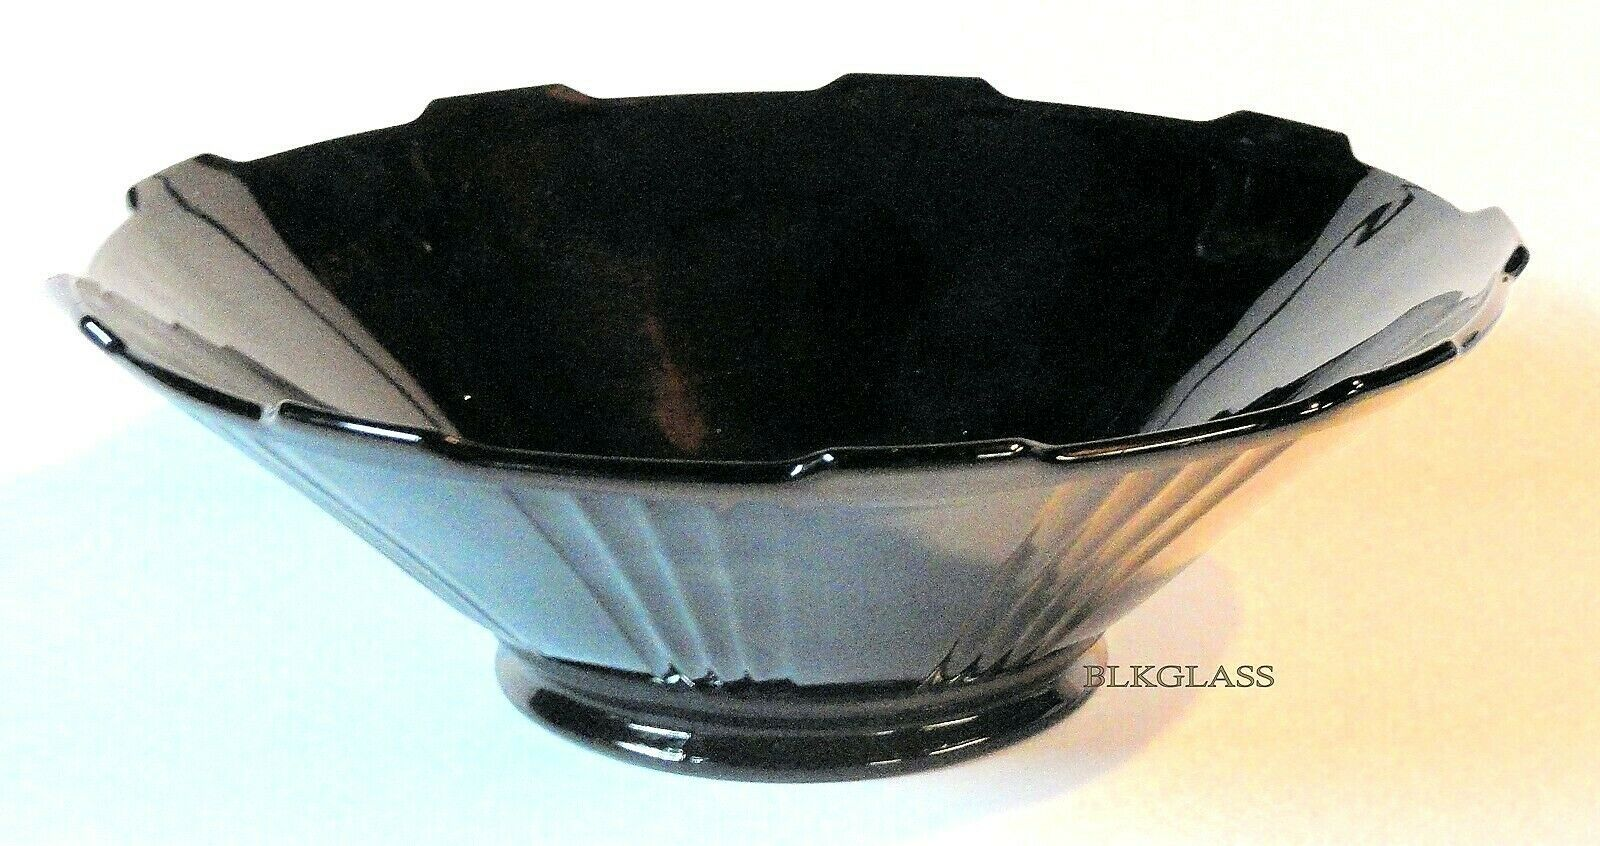 Imperial Black Glass Bowl Alternating Flute And Panel 8.5 inch Flared Tab Edges - $24.99